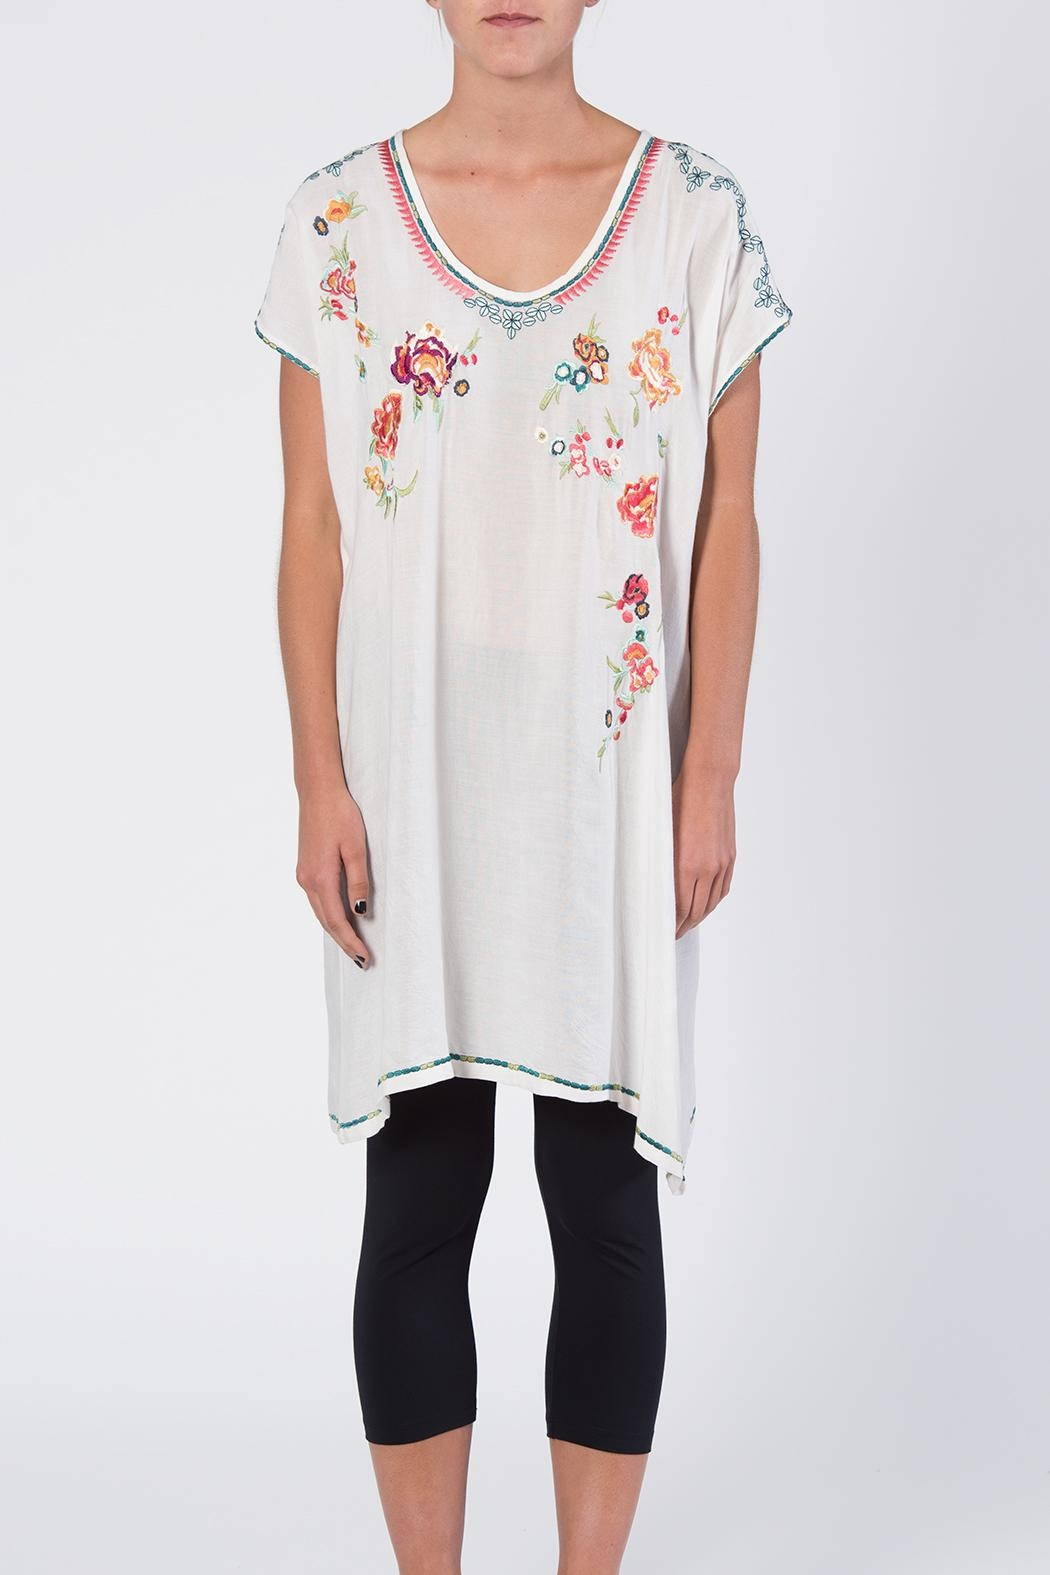 Apparel Love Multicolor Embroidered Tunic Top - Front Full Image